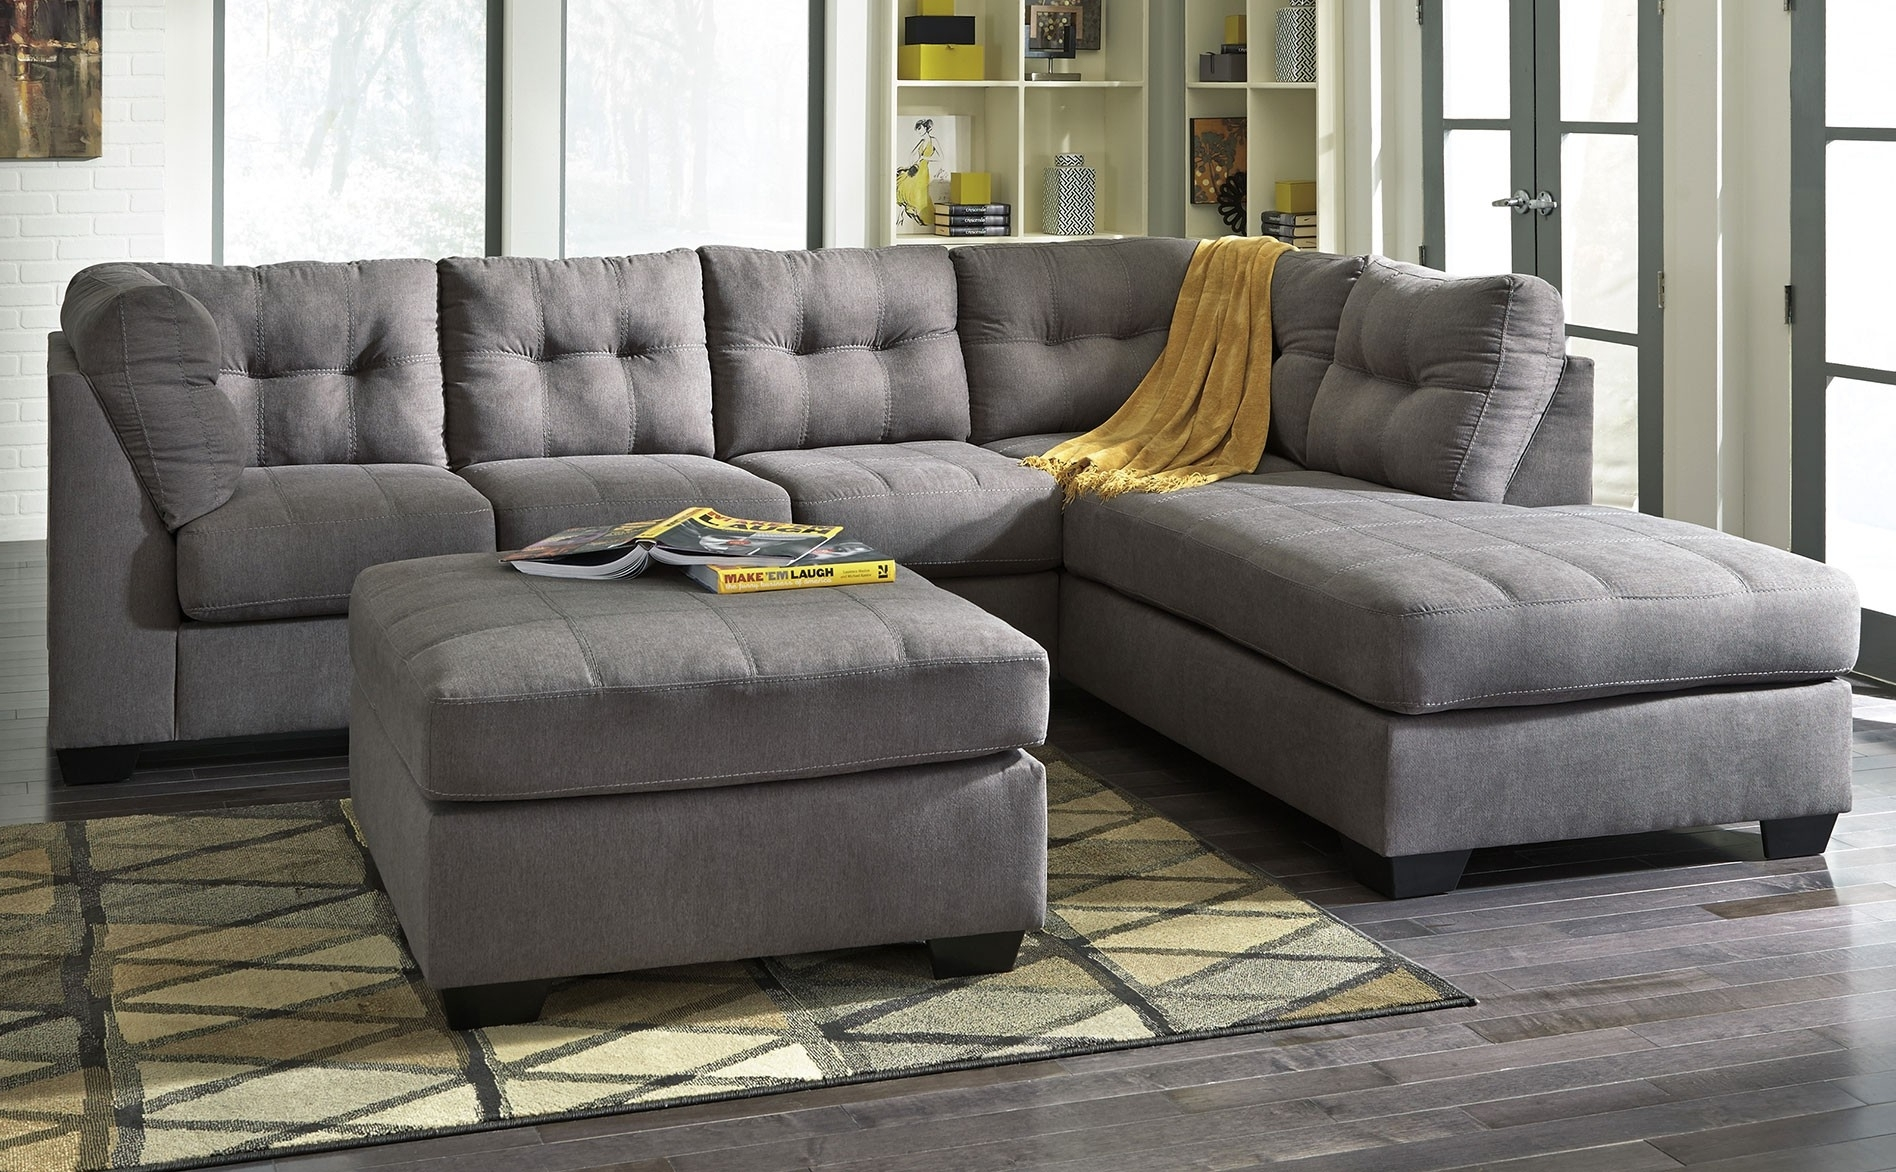 Preferred Sofa : Leather Couch Under 500 Sectionals Under 400 Room Couch Throughout Sectional Sofas Under  (View 8 of 15)